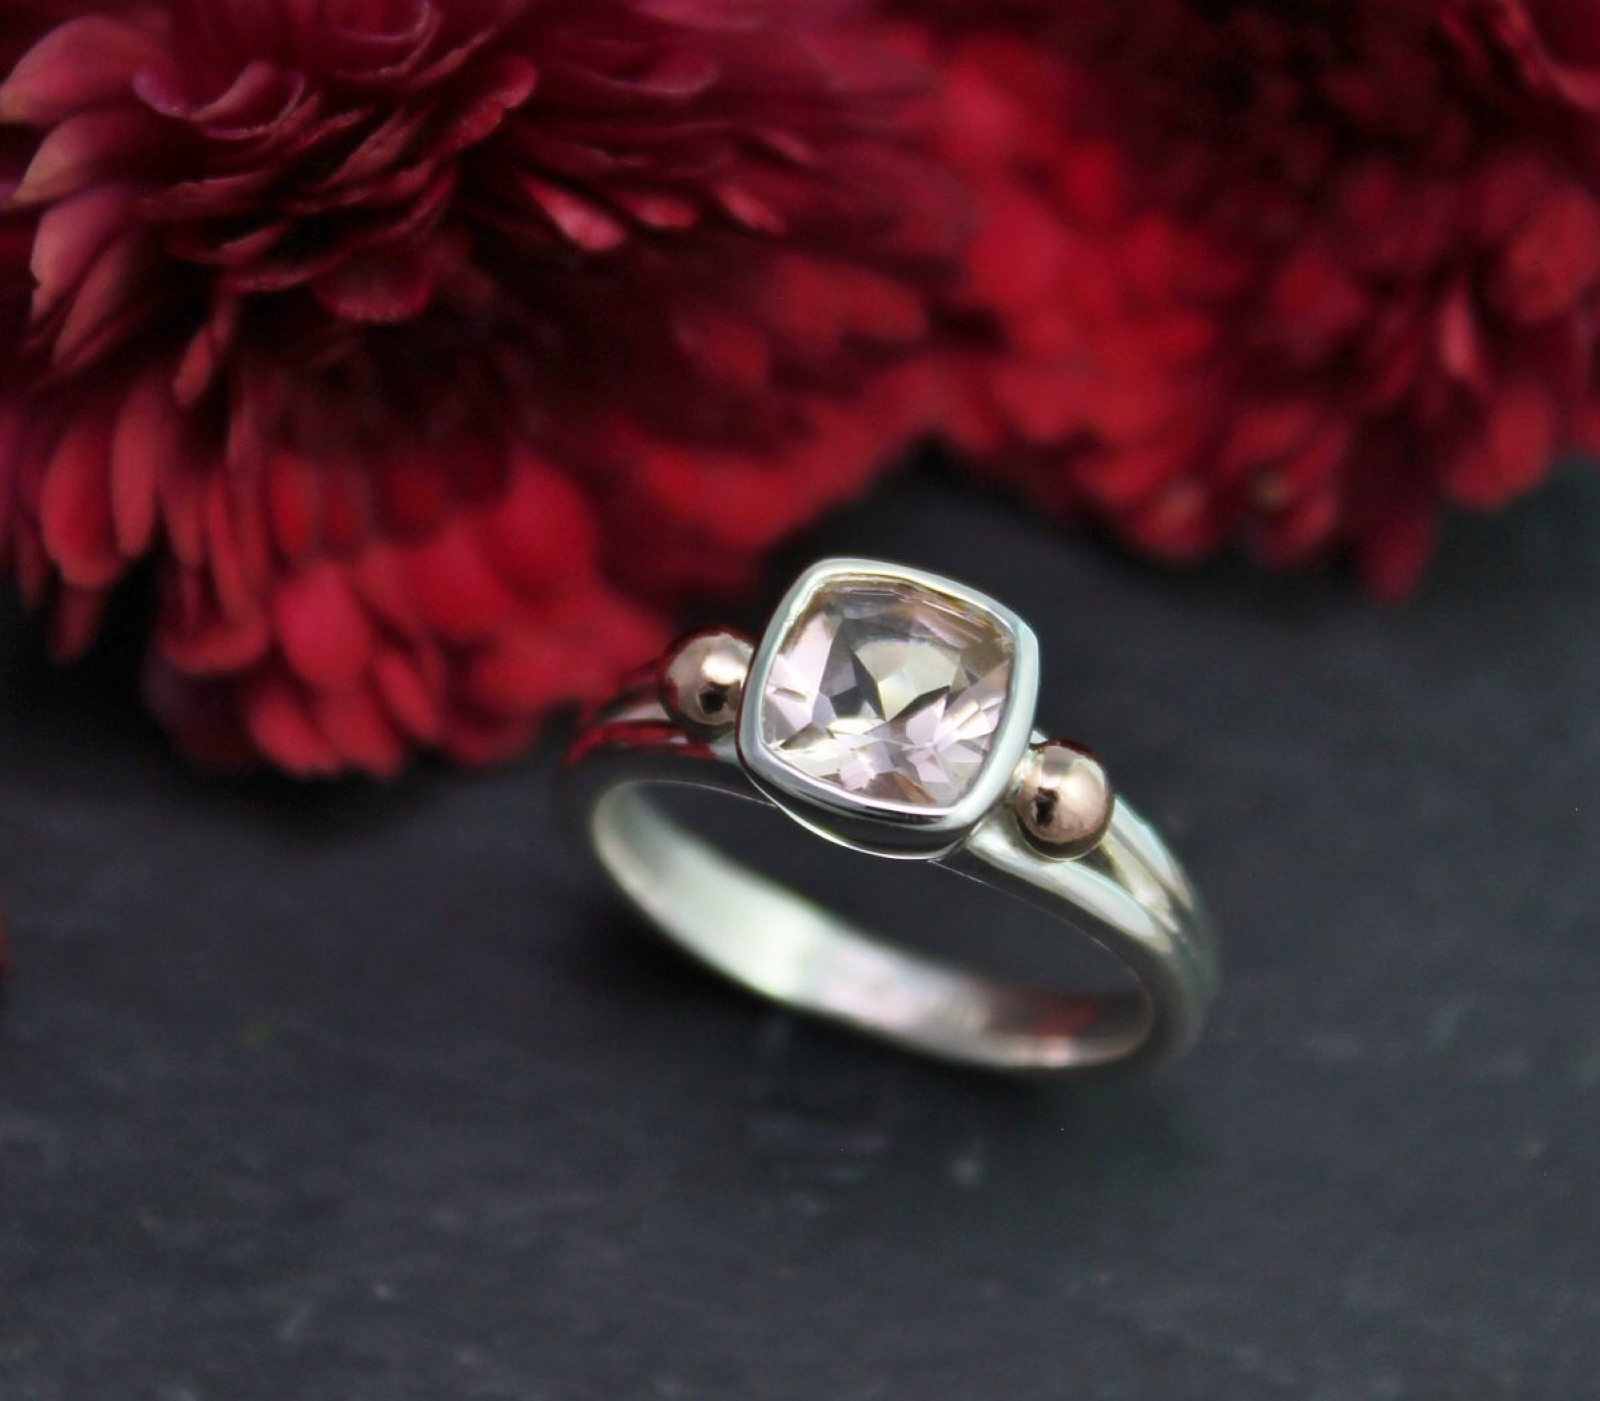 Cushion Cut Morganite Ring Sterling Silver Rose Gold Pink Gemstone Split Shank Two Tone Morganite Solitaire